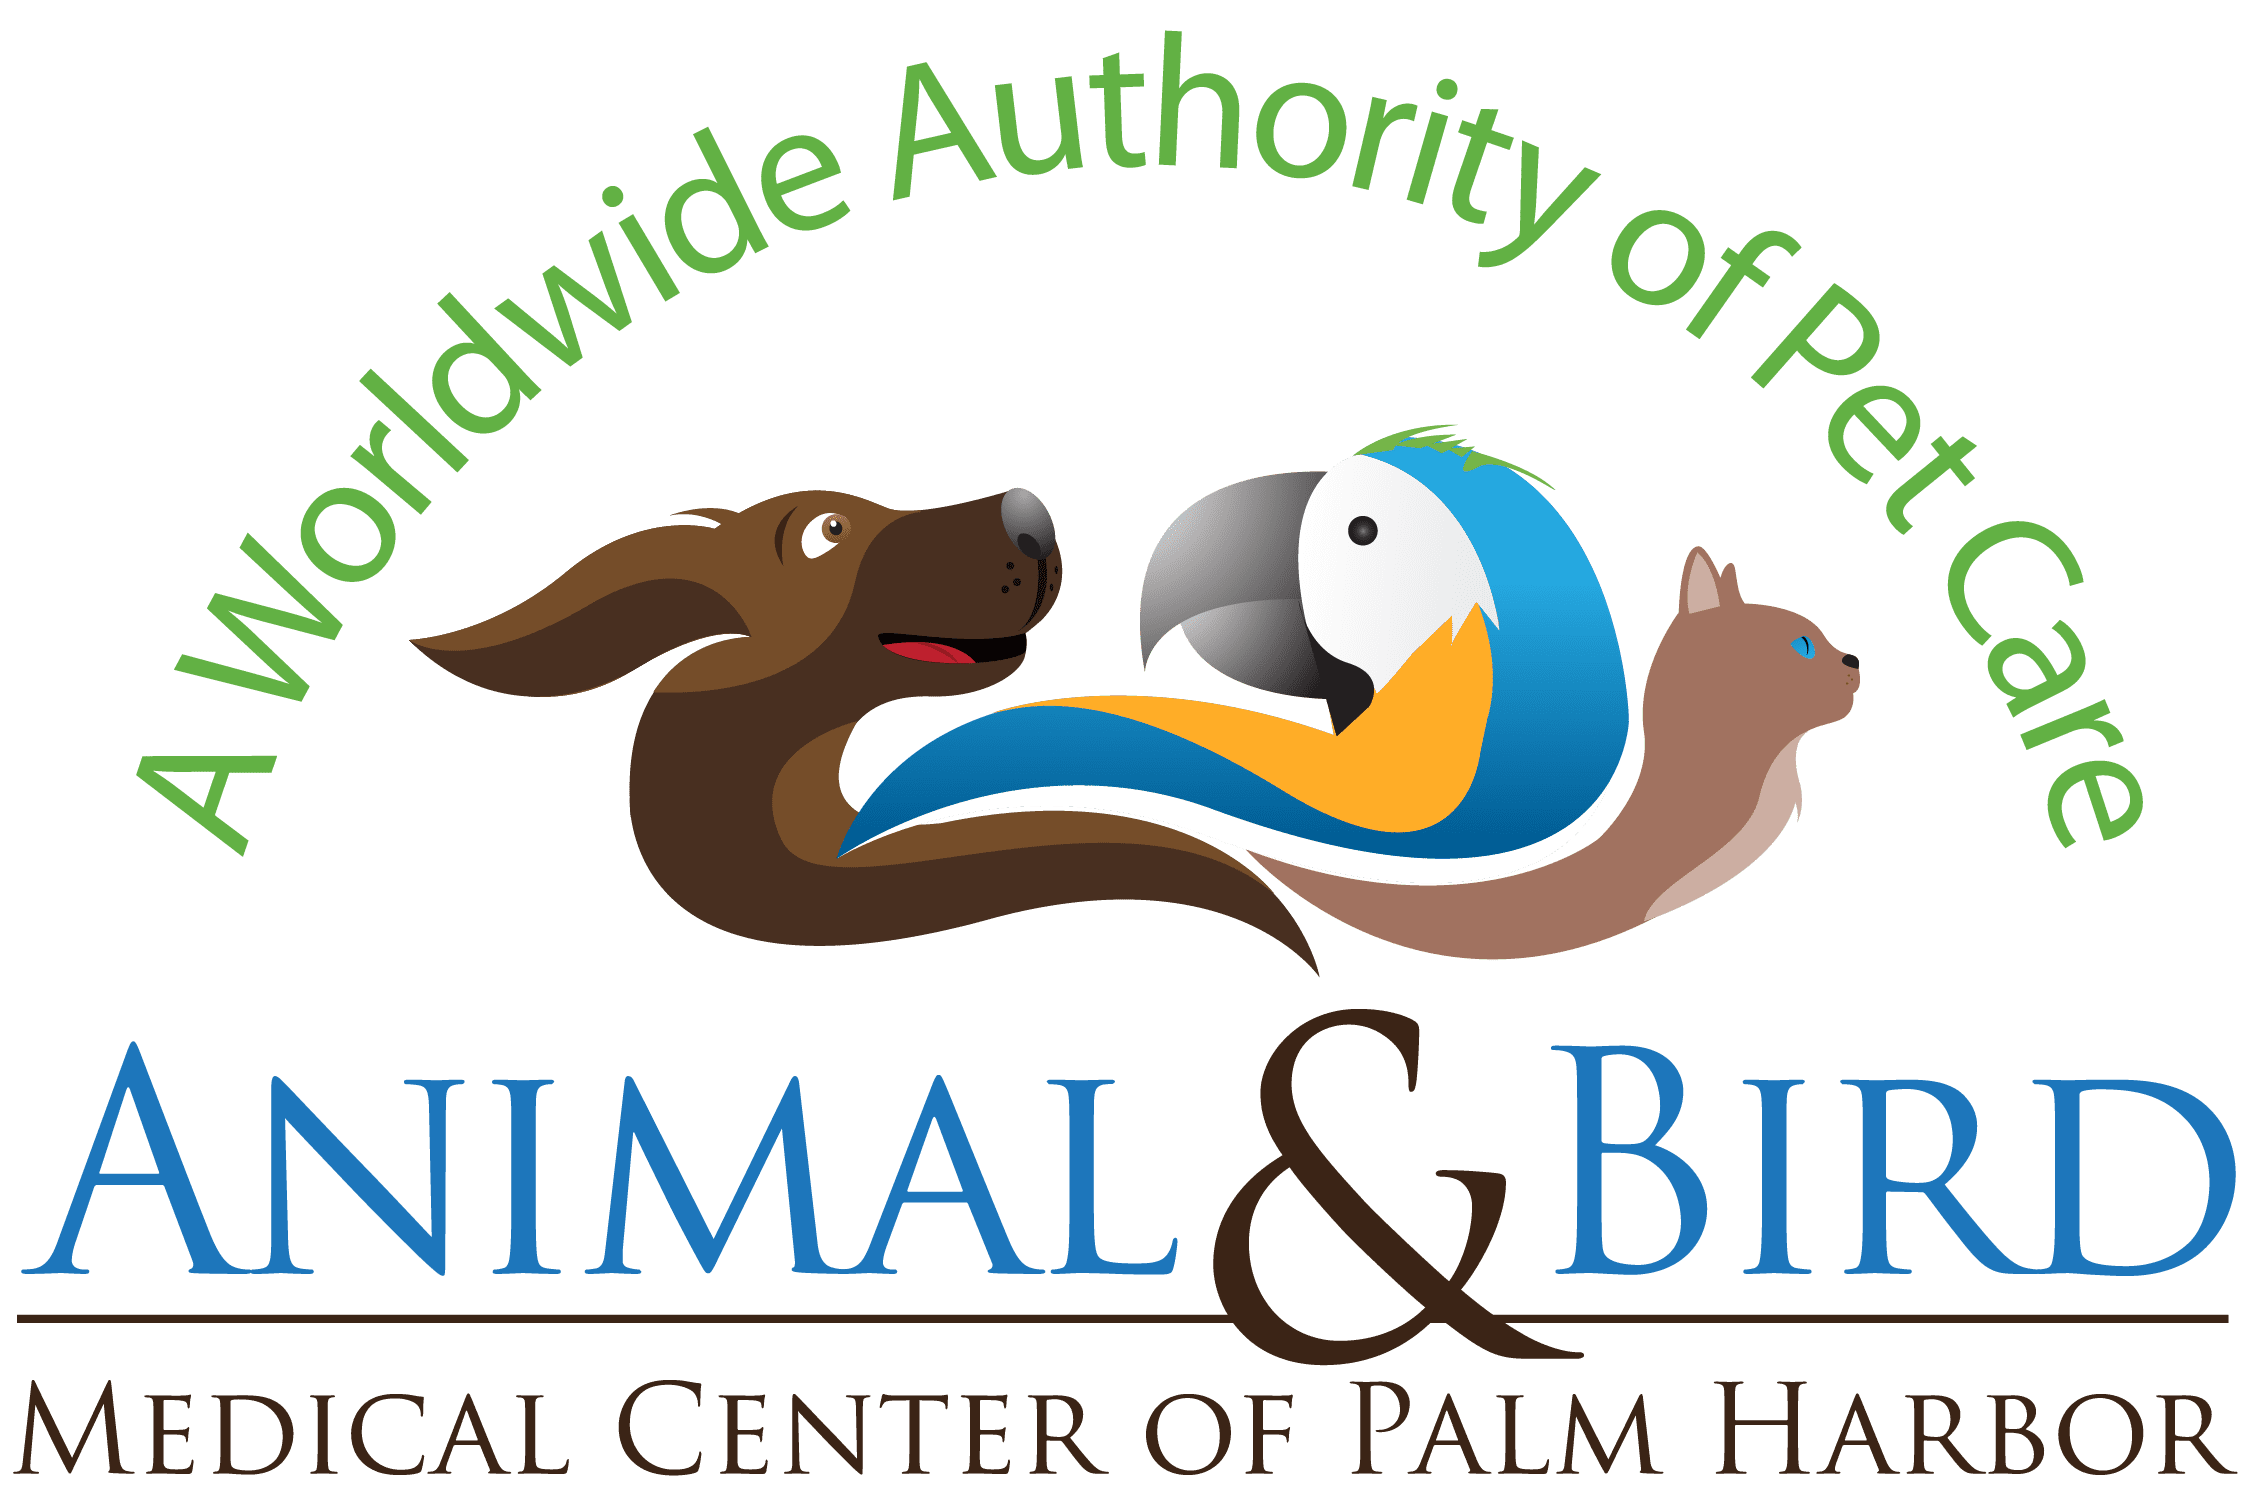 Animal and Bird Medical Center - Vet Clinic of Palm Harbor